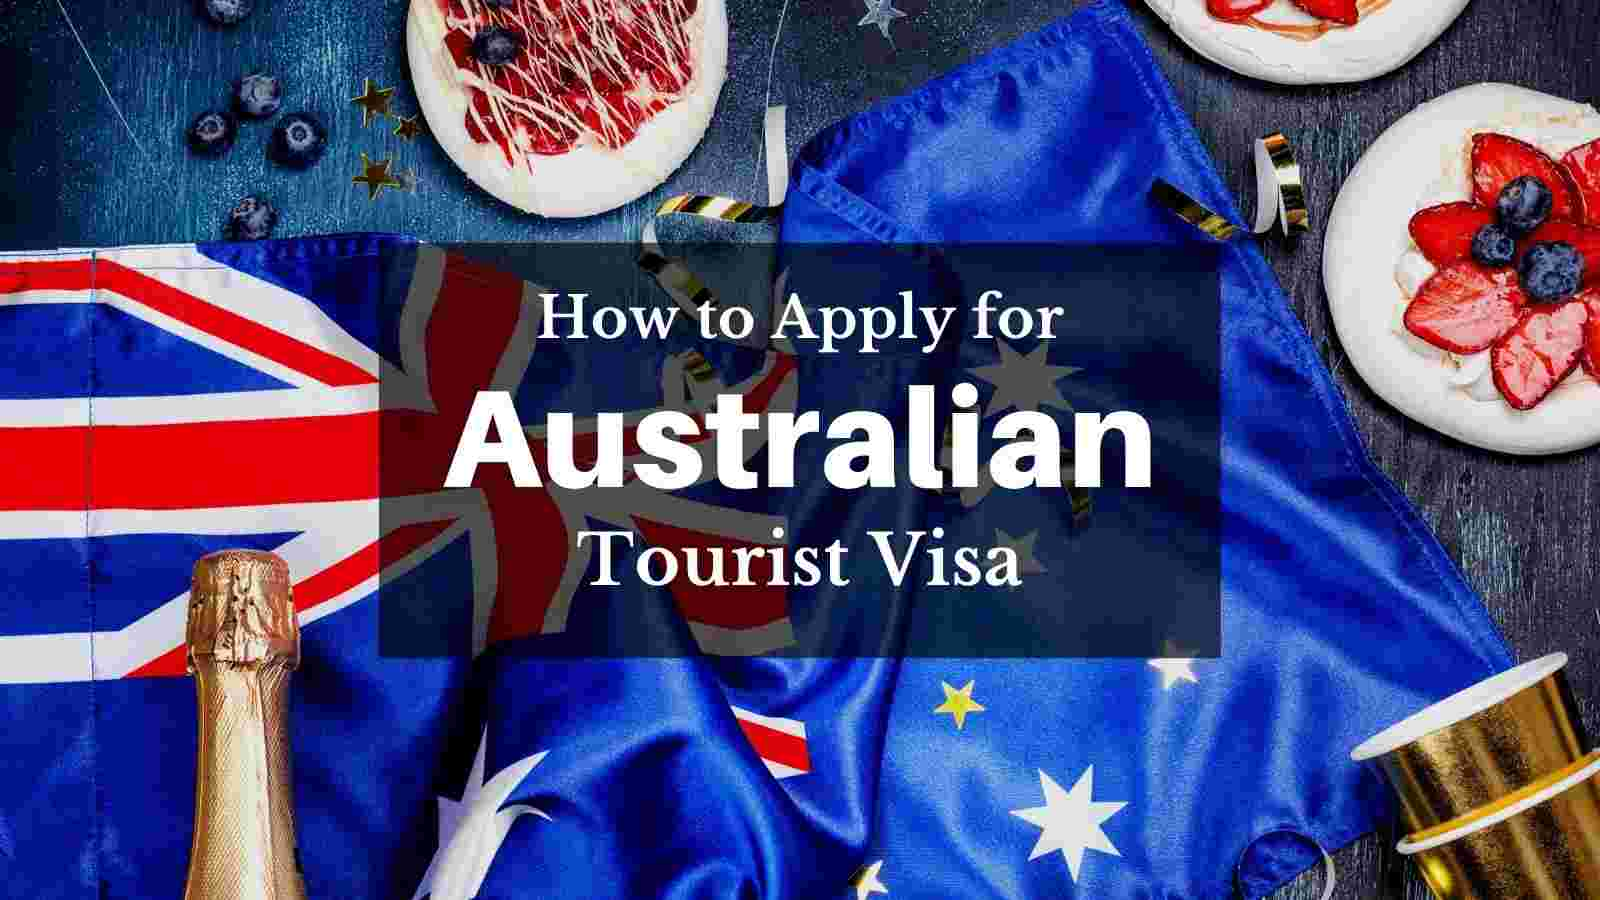 how to apply for australian tourist visa in the philippines